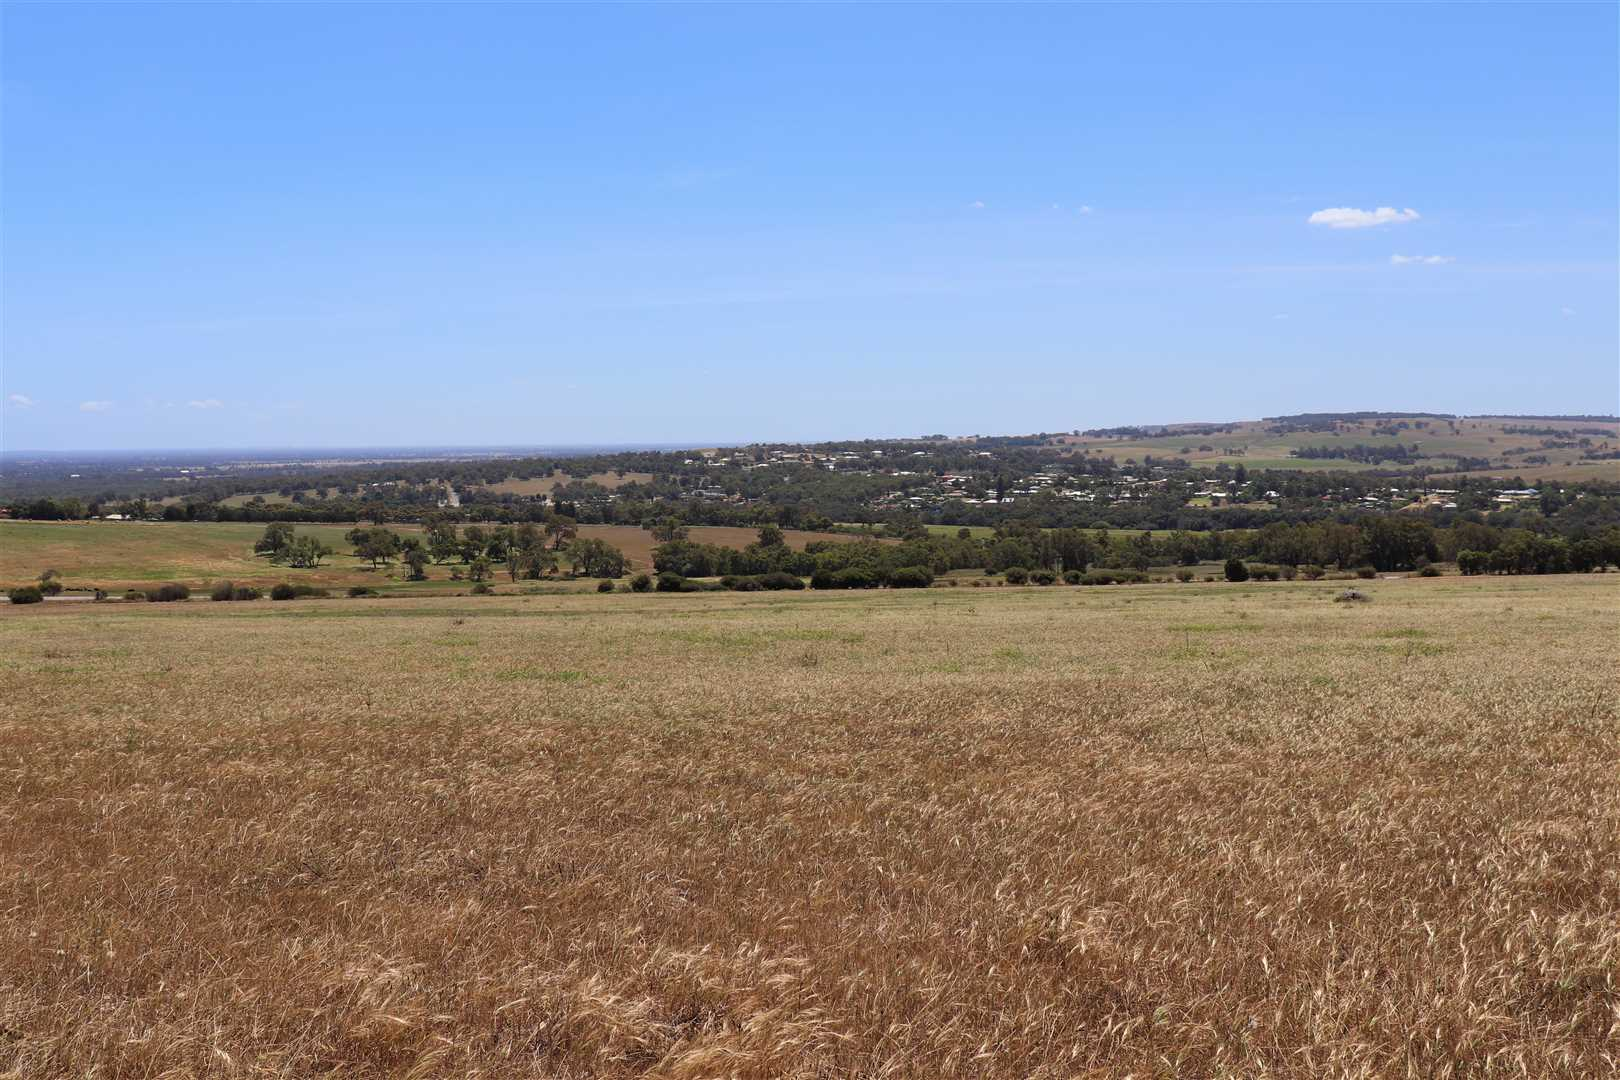 View over Gingin townsite